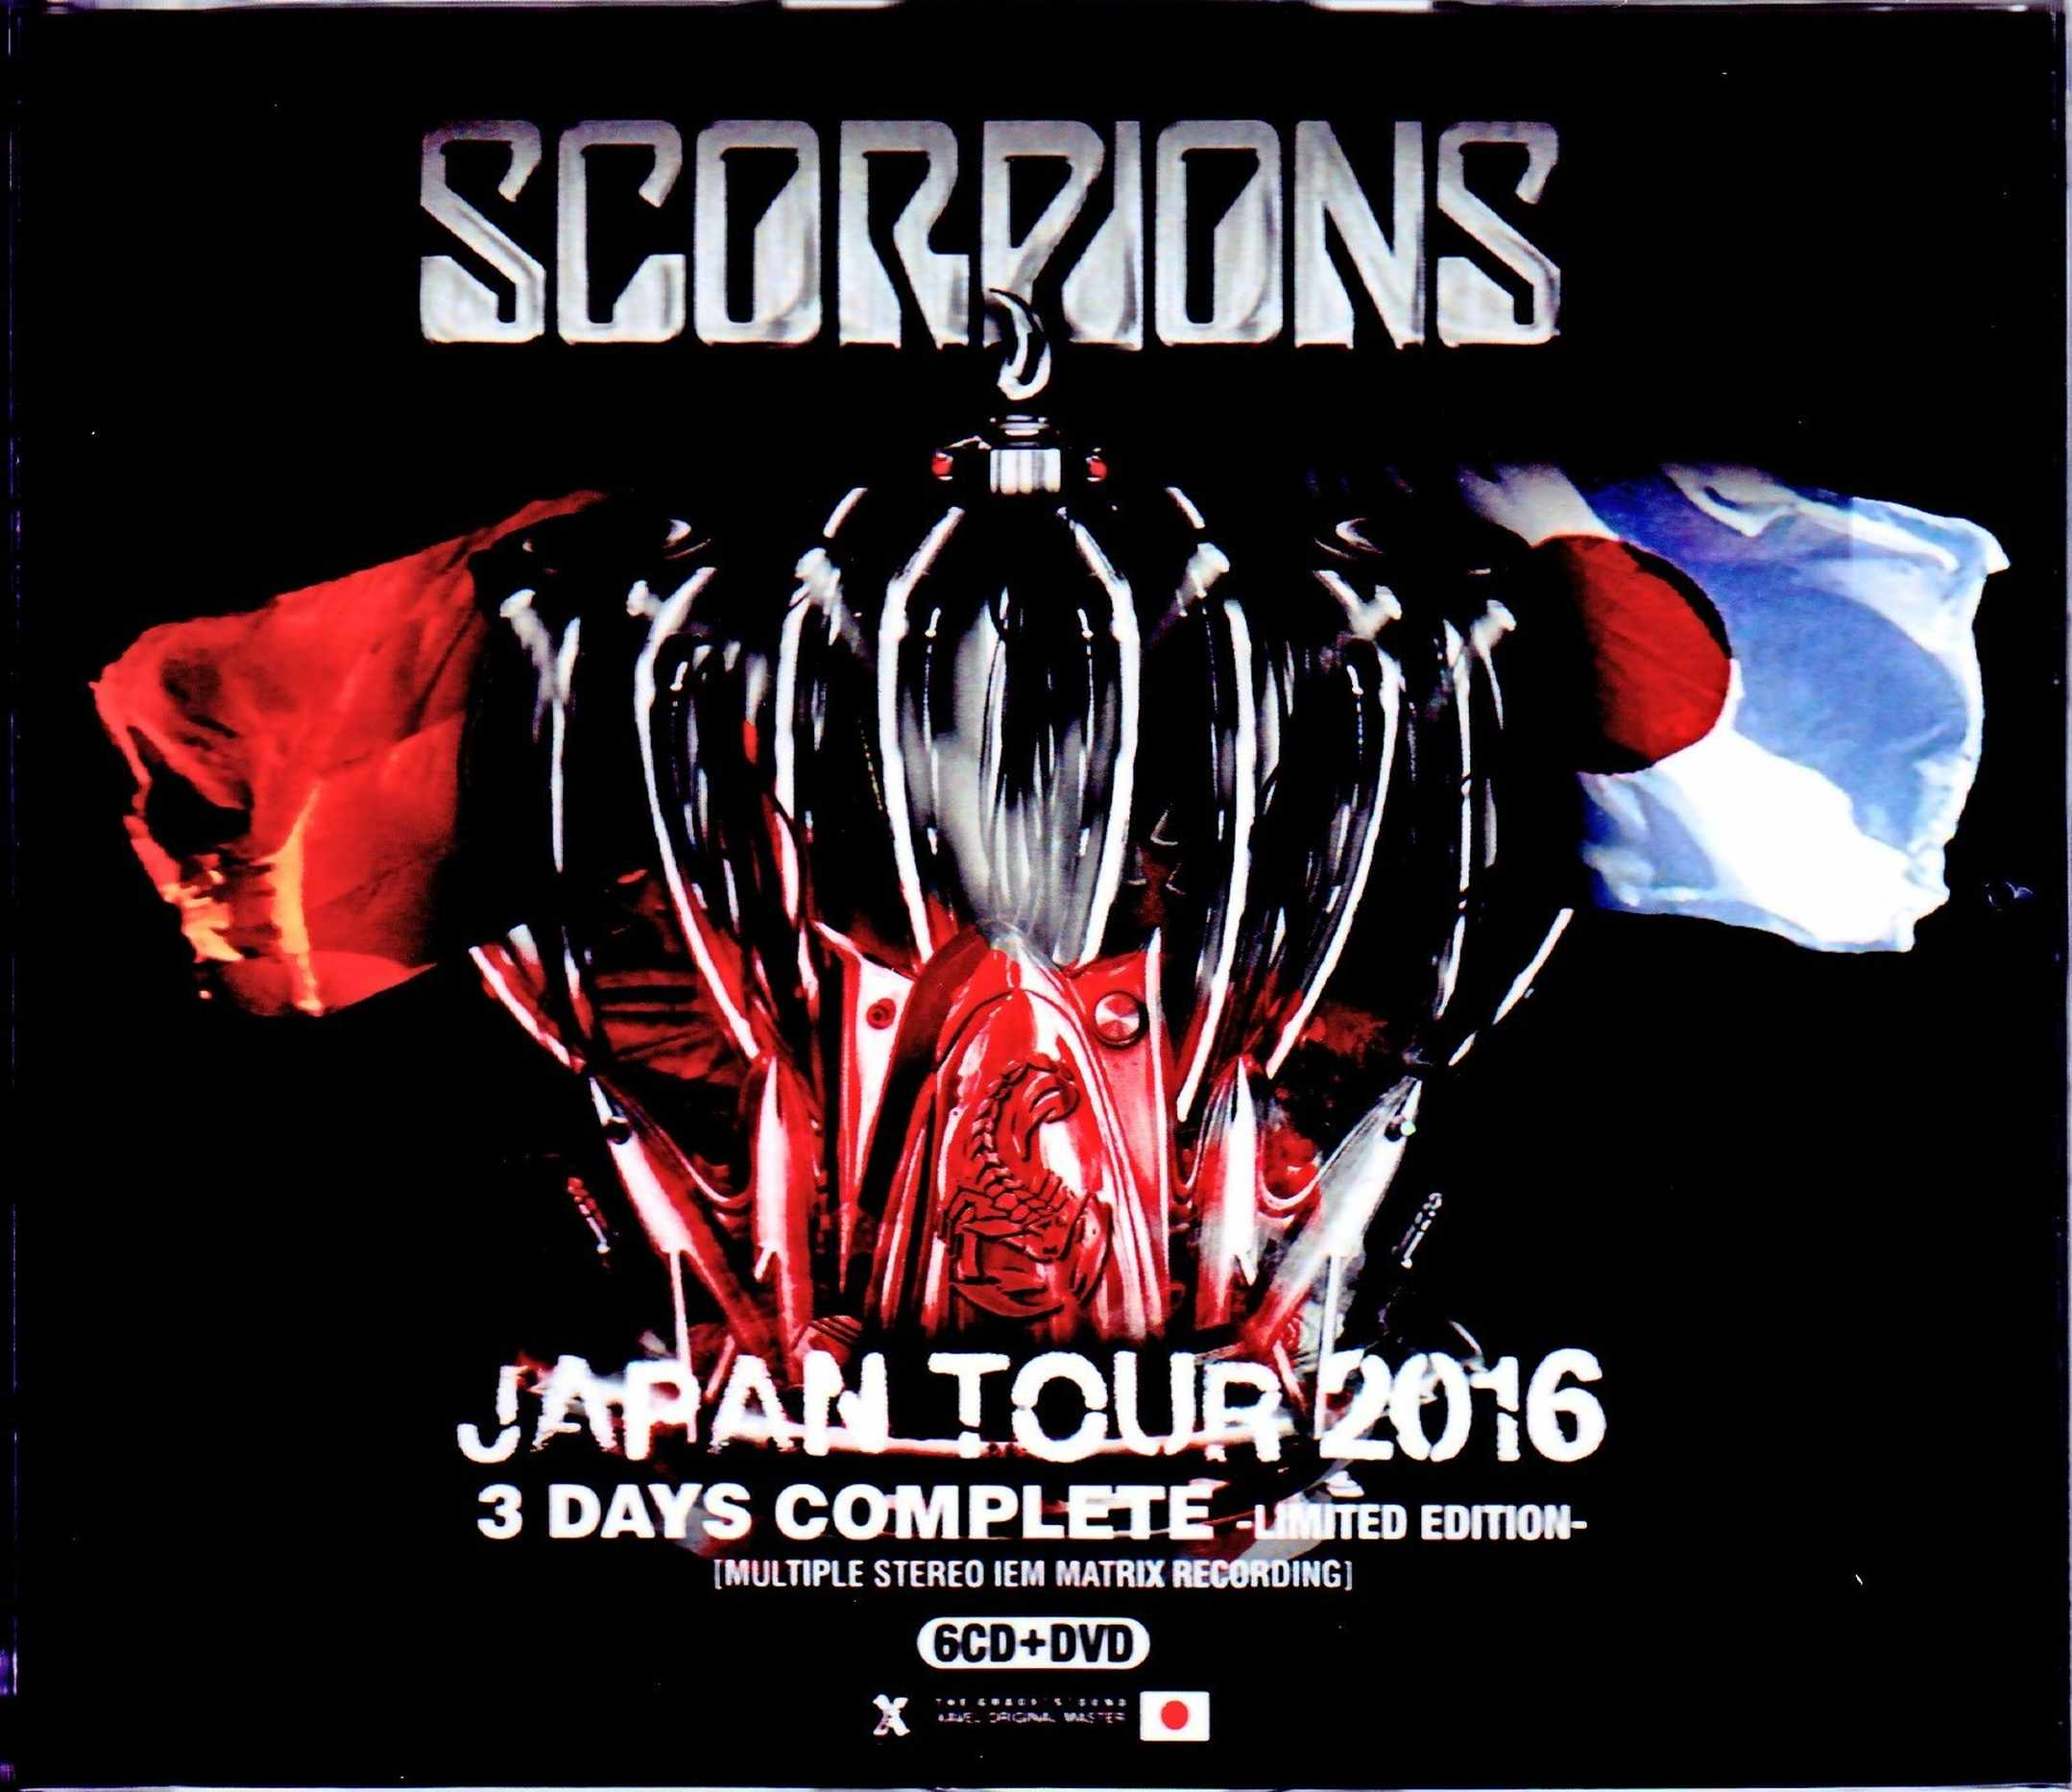 Scorpions スコーピオンズ/Japan Tour 2016 3 Days Complete IEM Matrix & more